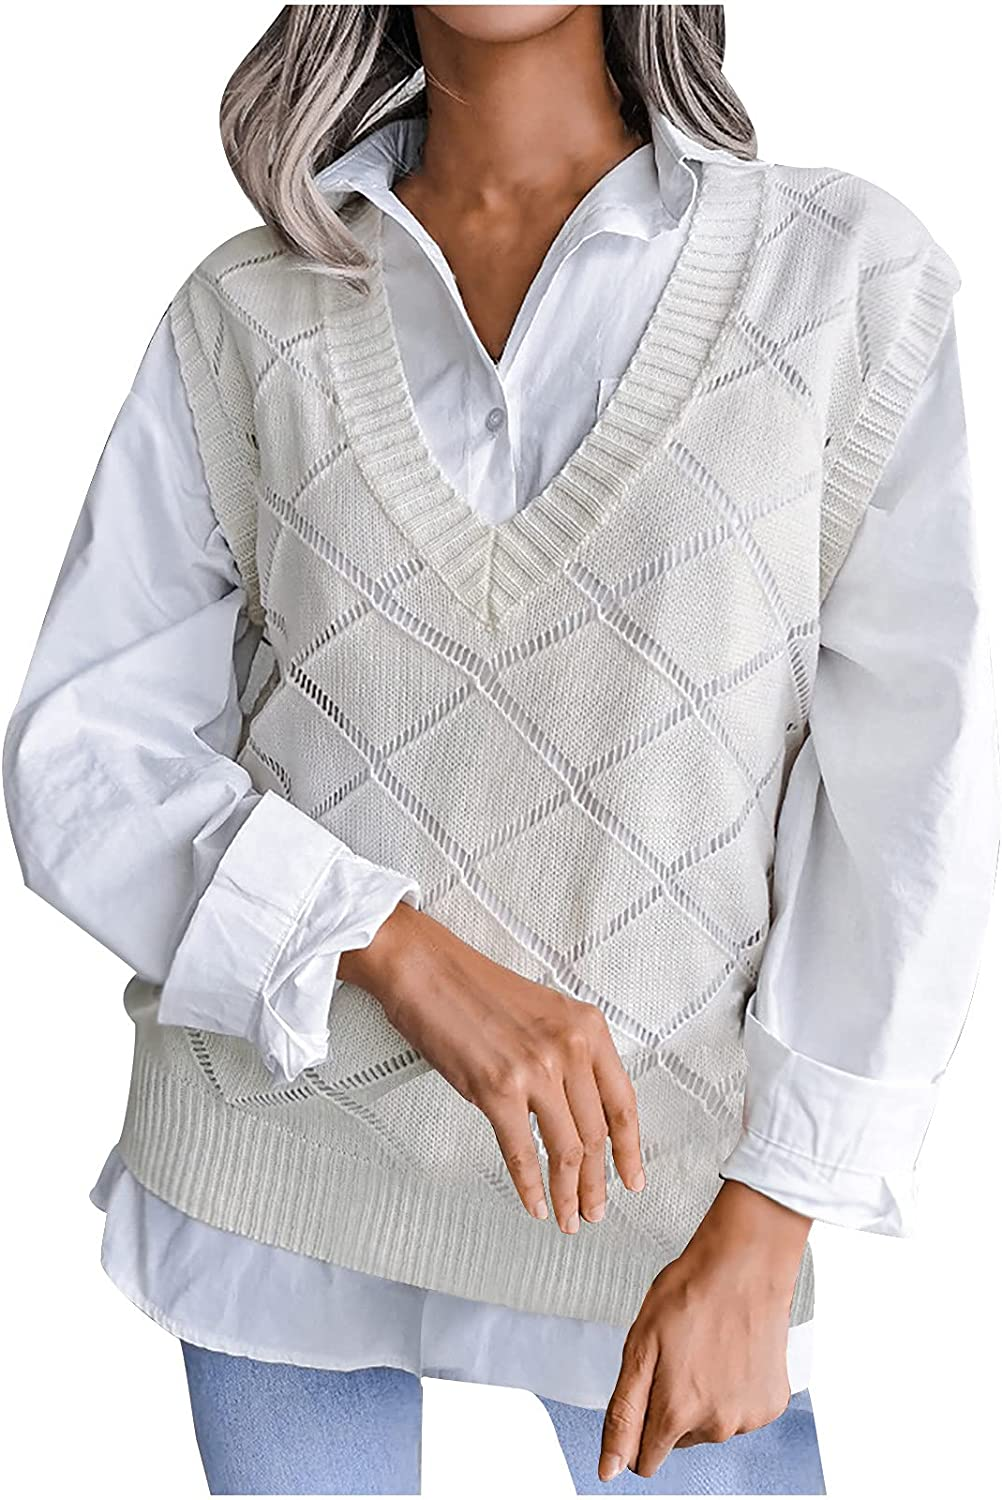 RFNIU Sweater Vest Women Fall Fashion Casual V Neck Hollow Out Diamond Knitted Pulllover Tops To Wear With Shirt